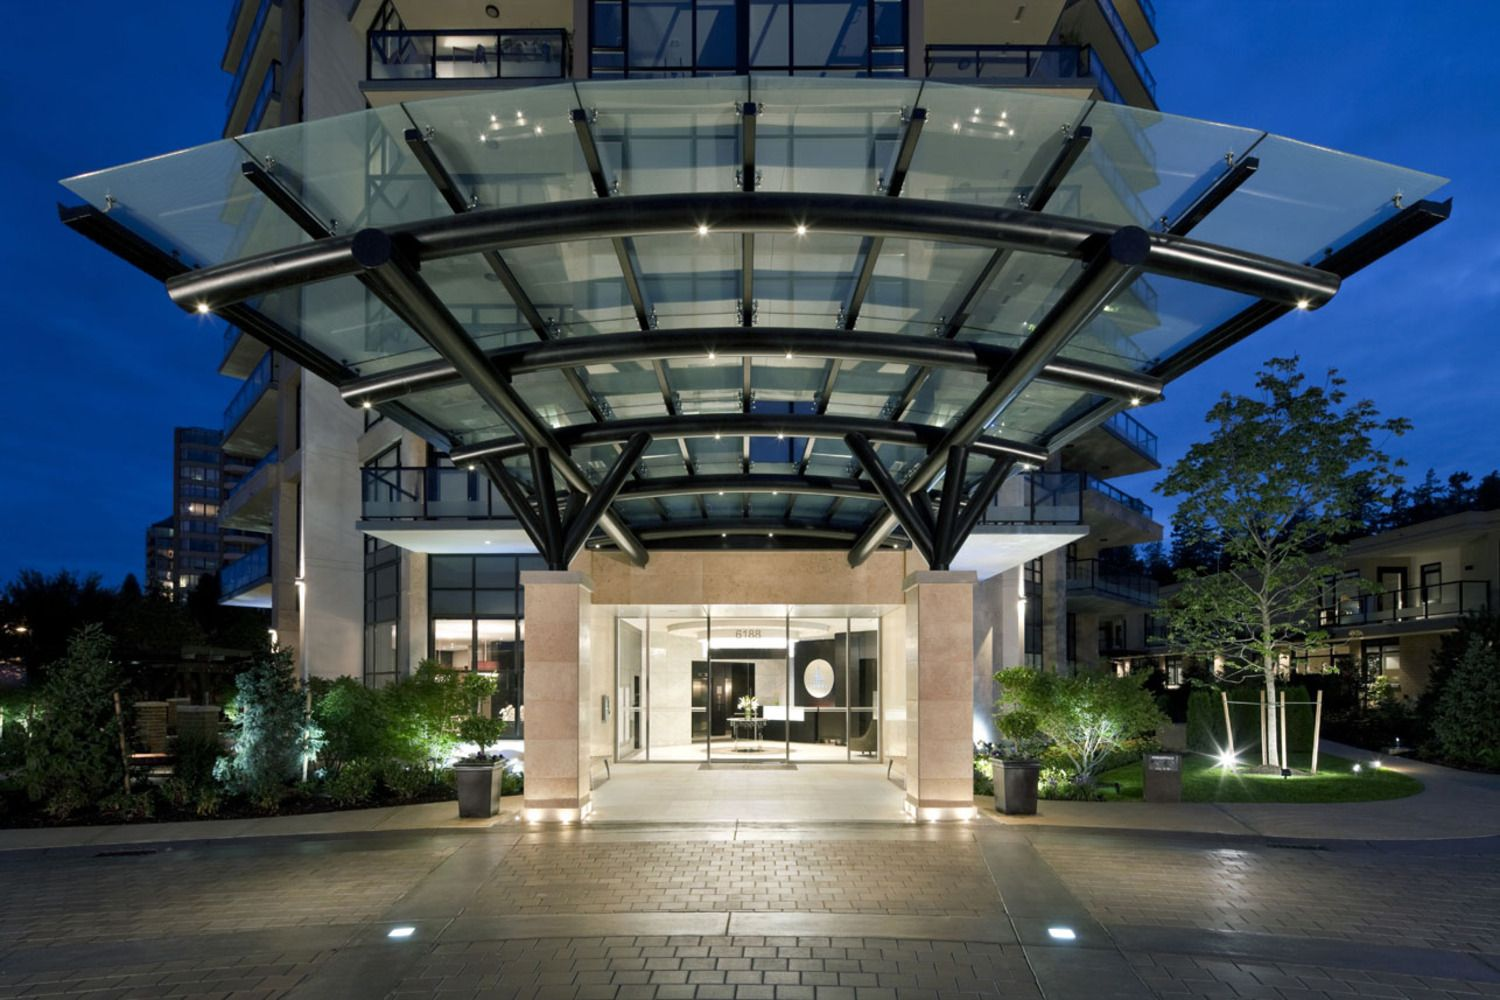 Grand Entrance Hotel Canopy Entrance Yahoo Image Search